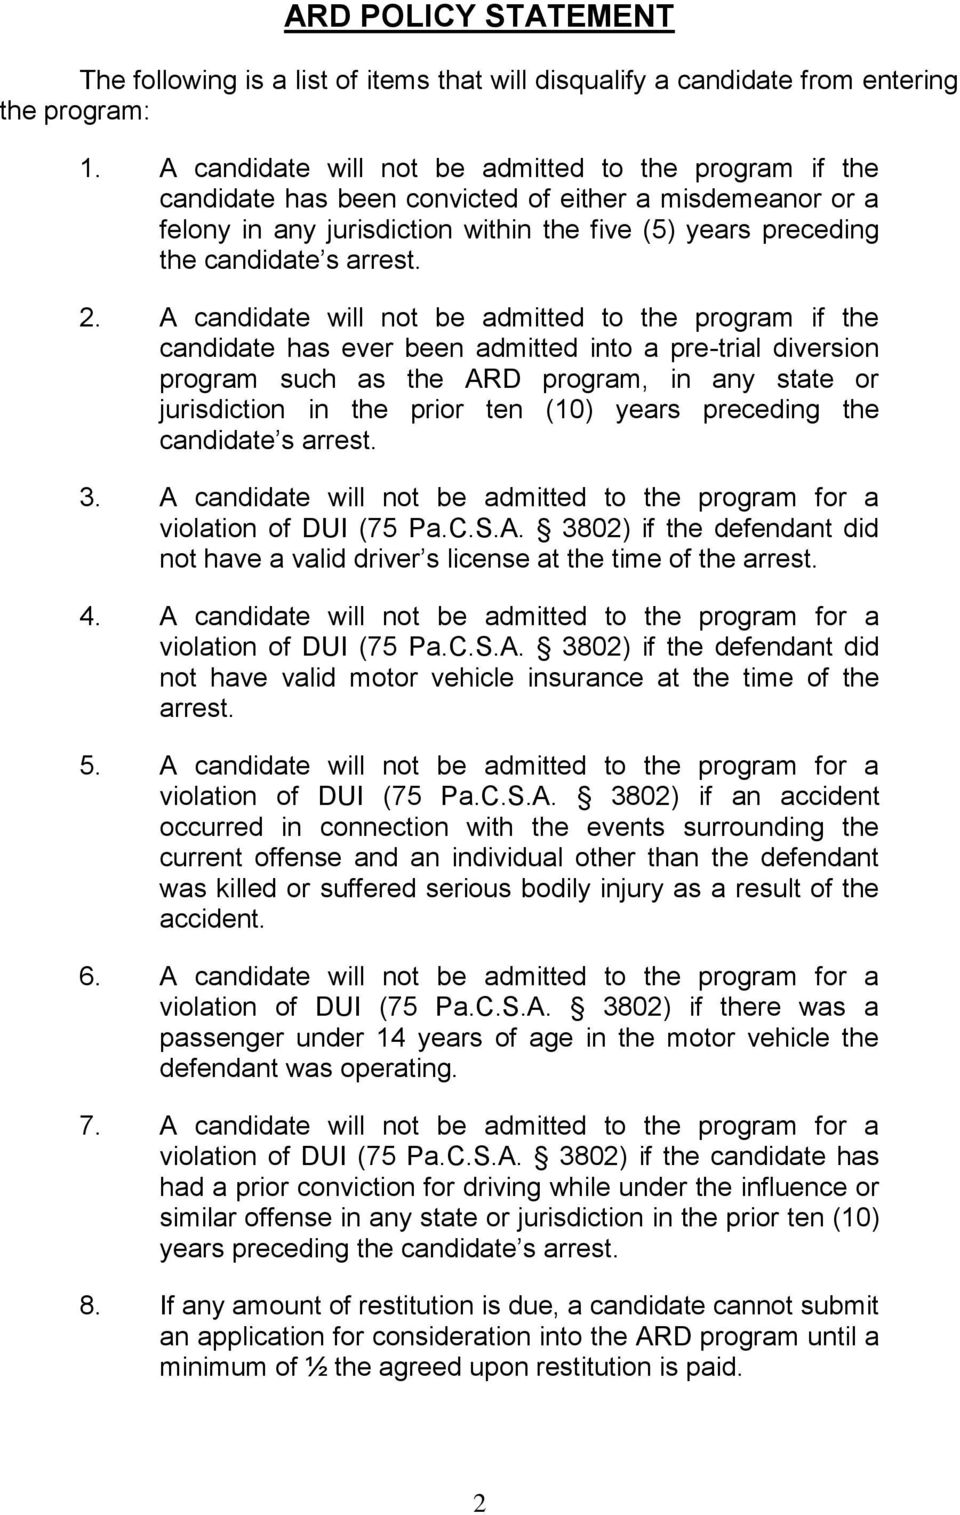 2. A candidate will not be admitted to the program if the candidate has ever been admitted into a pre-trial diversion program such as the ARD program, in any state or jurisdiction in the prior ten